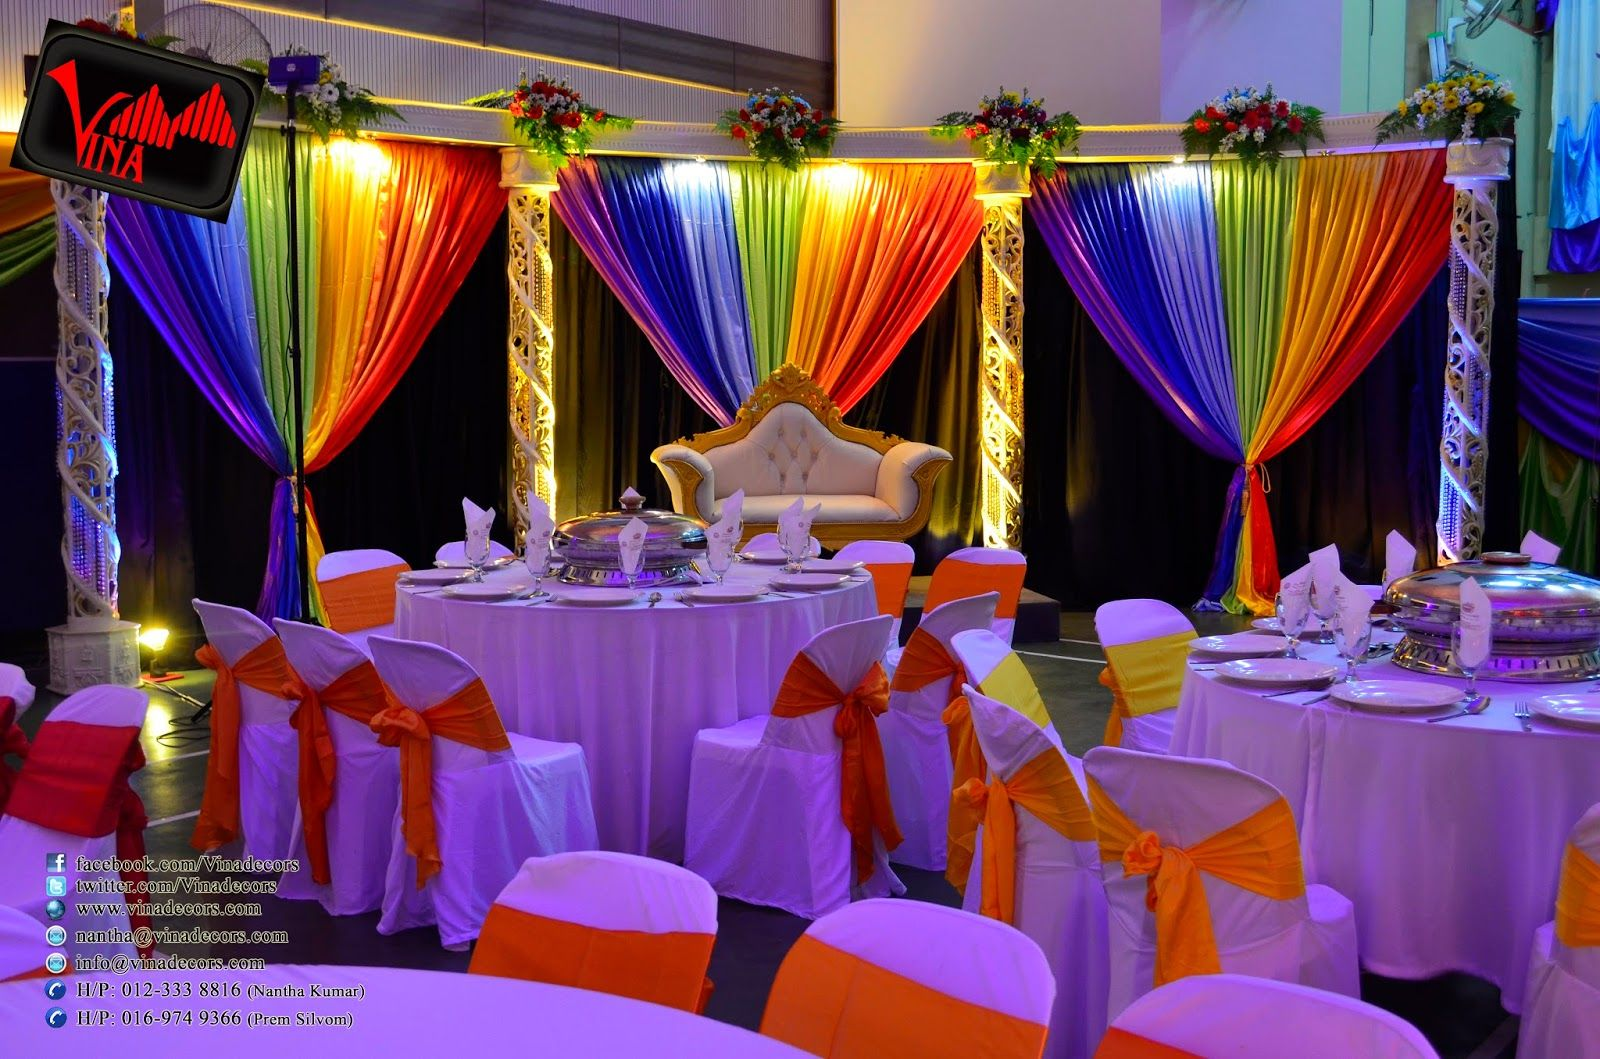 rainbow color concept wedding dinner decoration at srjk (c) batu